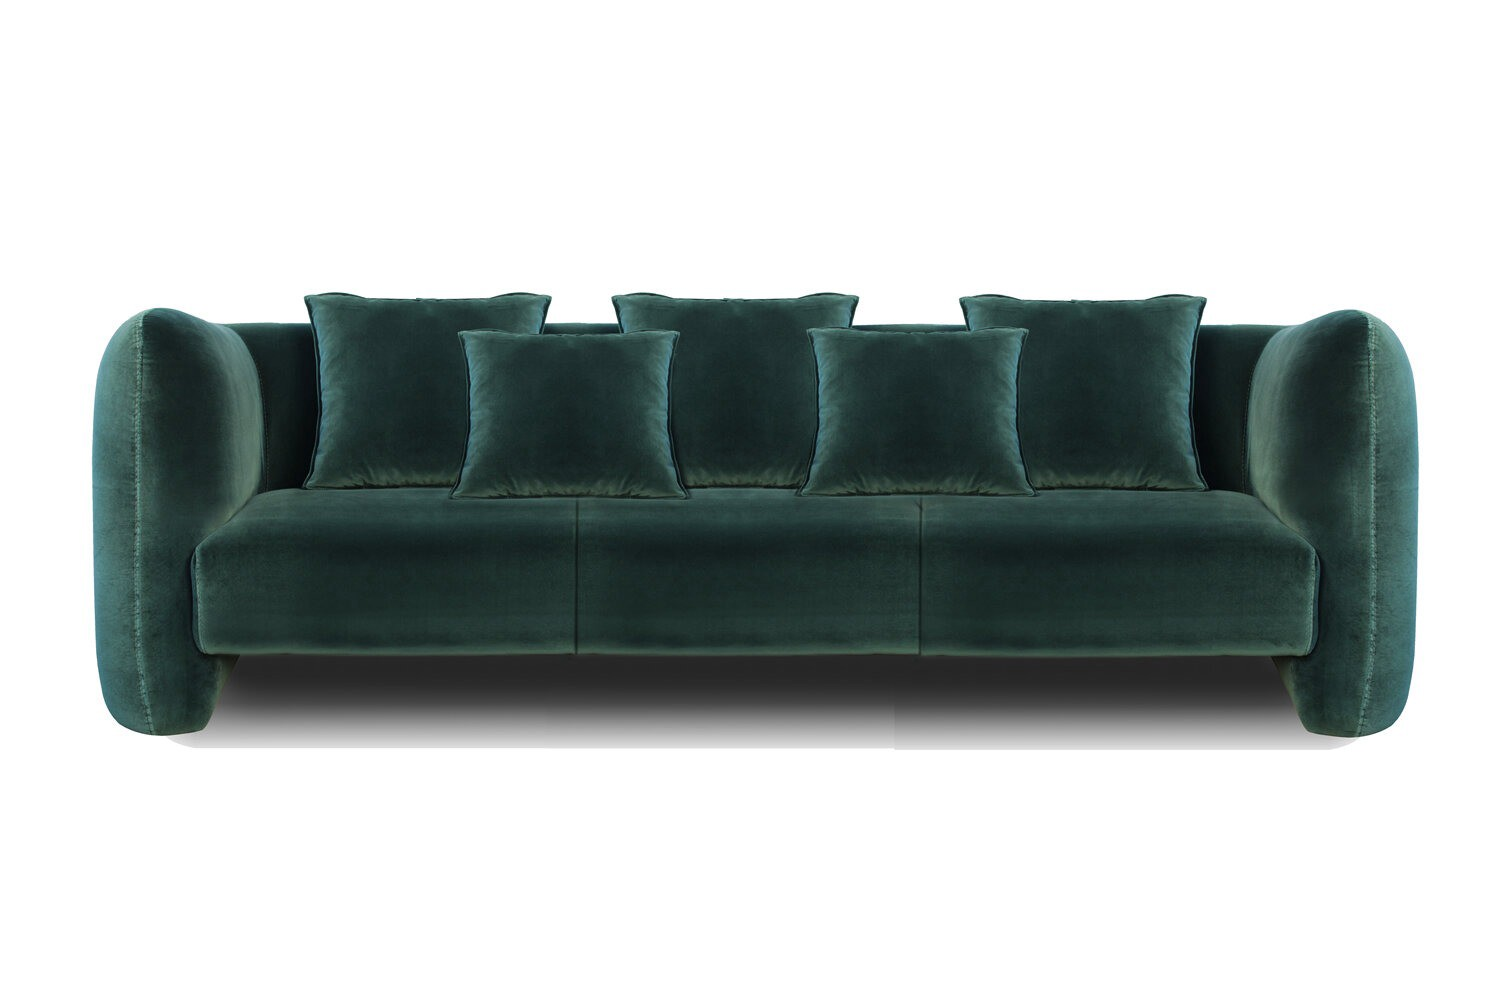 Modern Leather Sofas Show Side